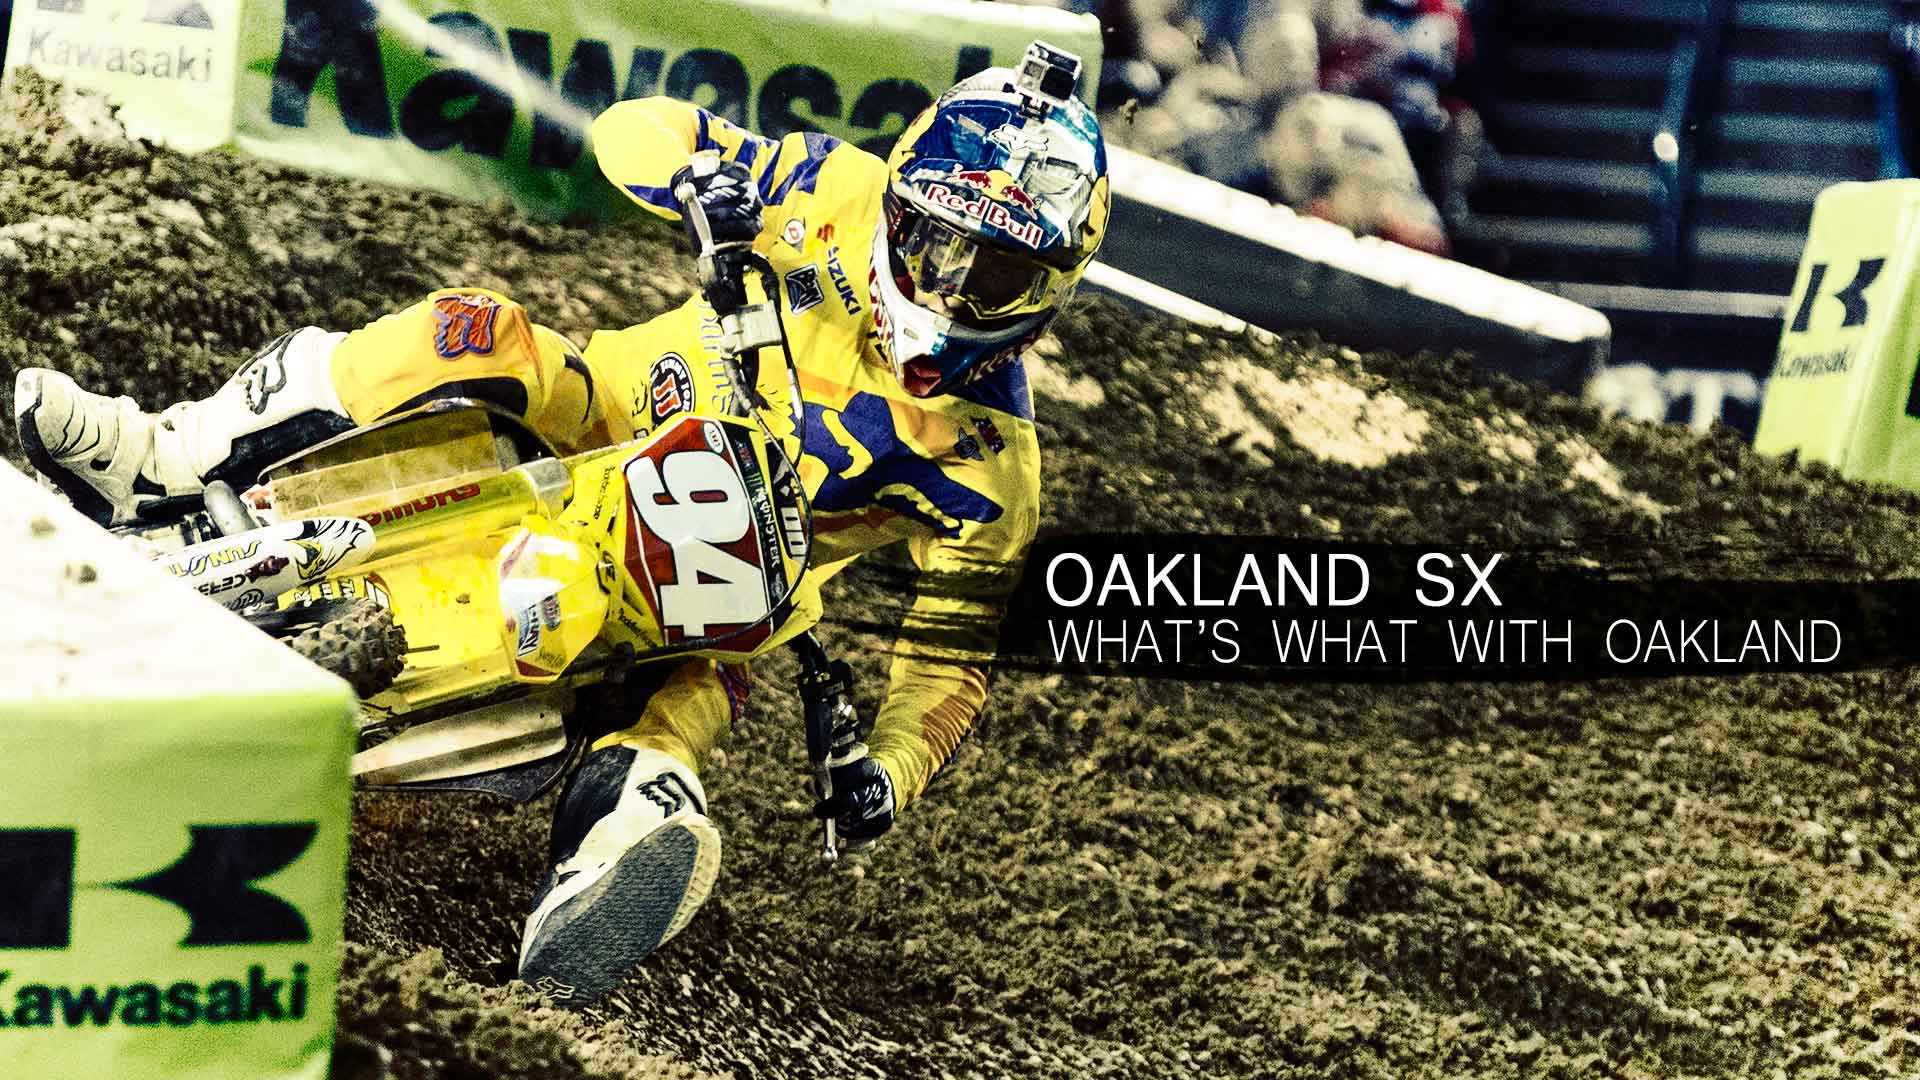 What's What: Oakland SX - Facts, Stats, Things to do